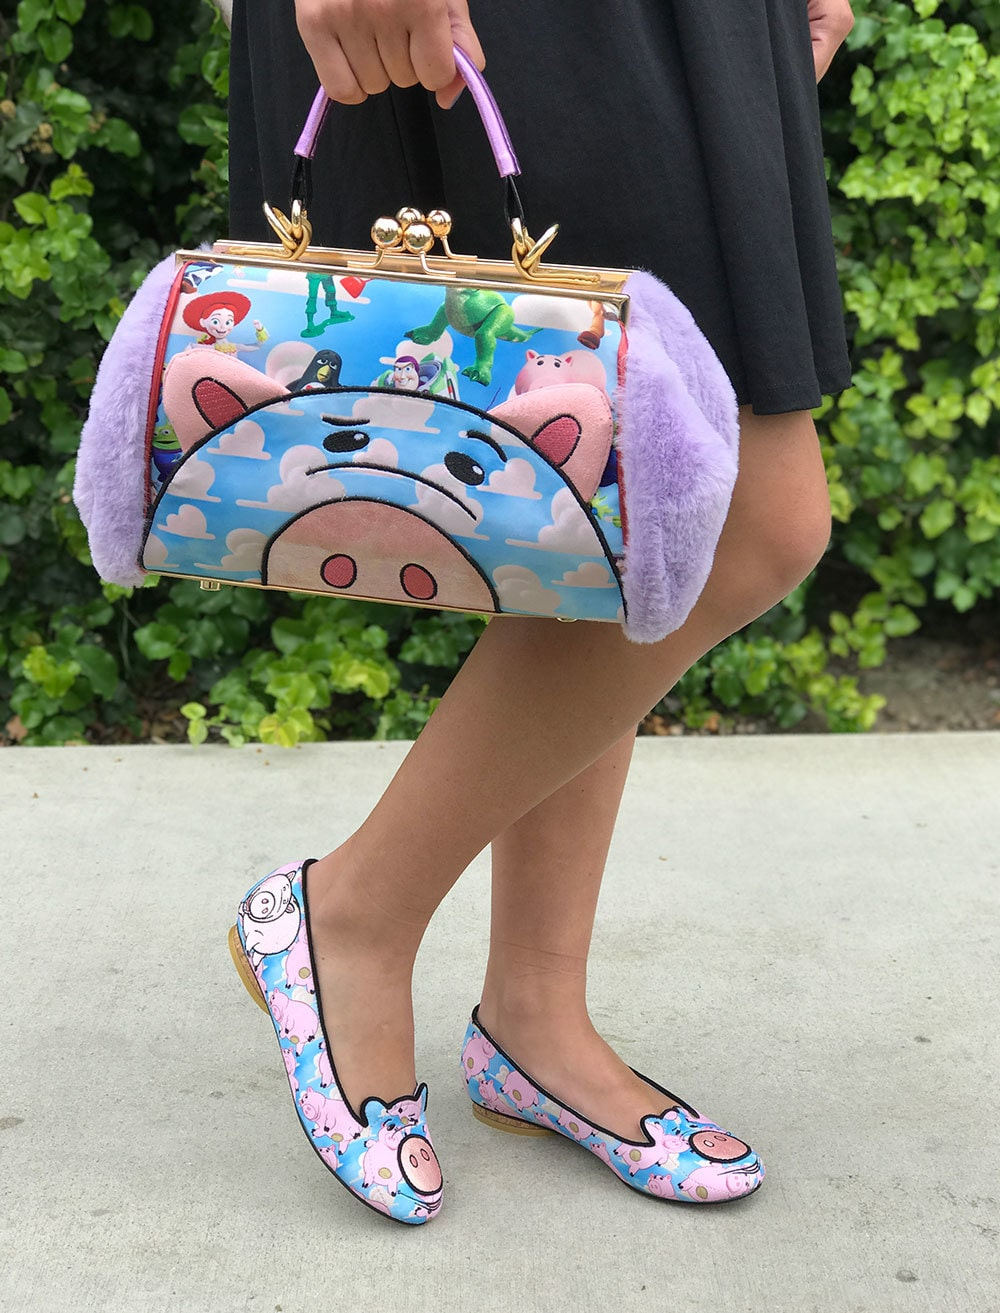 Hand bag and shoes from The Toy Story Irregular Choice Collection